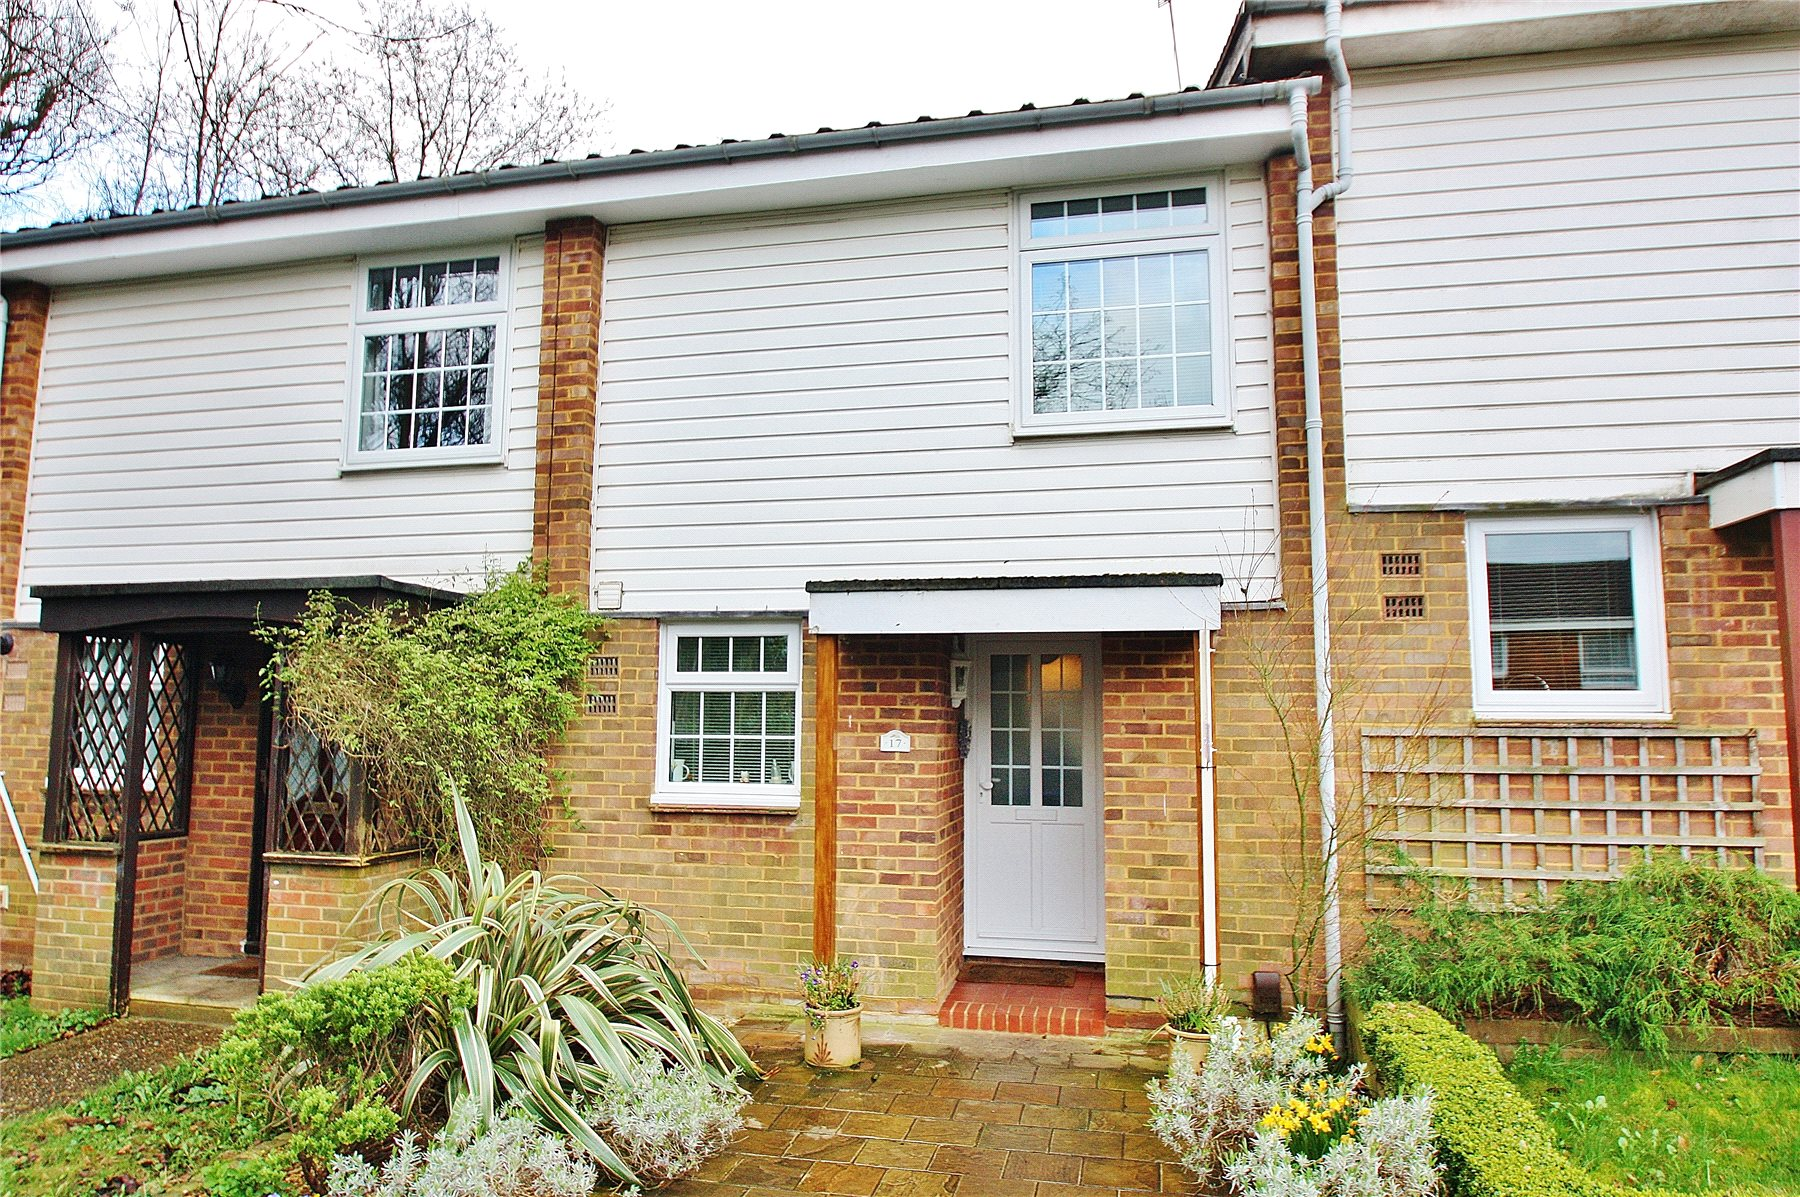 3 Bedrooms Terraced House for sale in Tolldene Close, Knaphill, Woking, Surrey, GU21